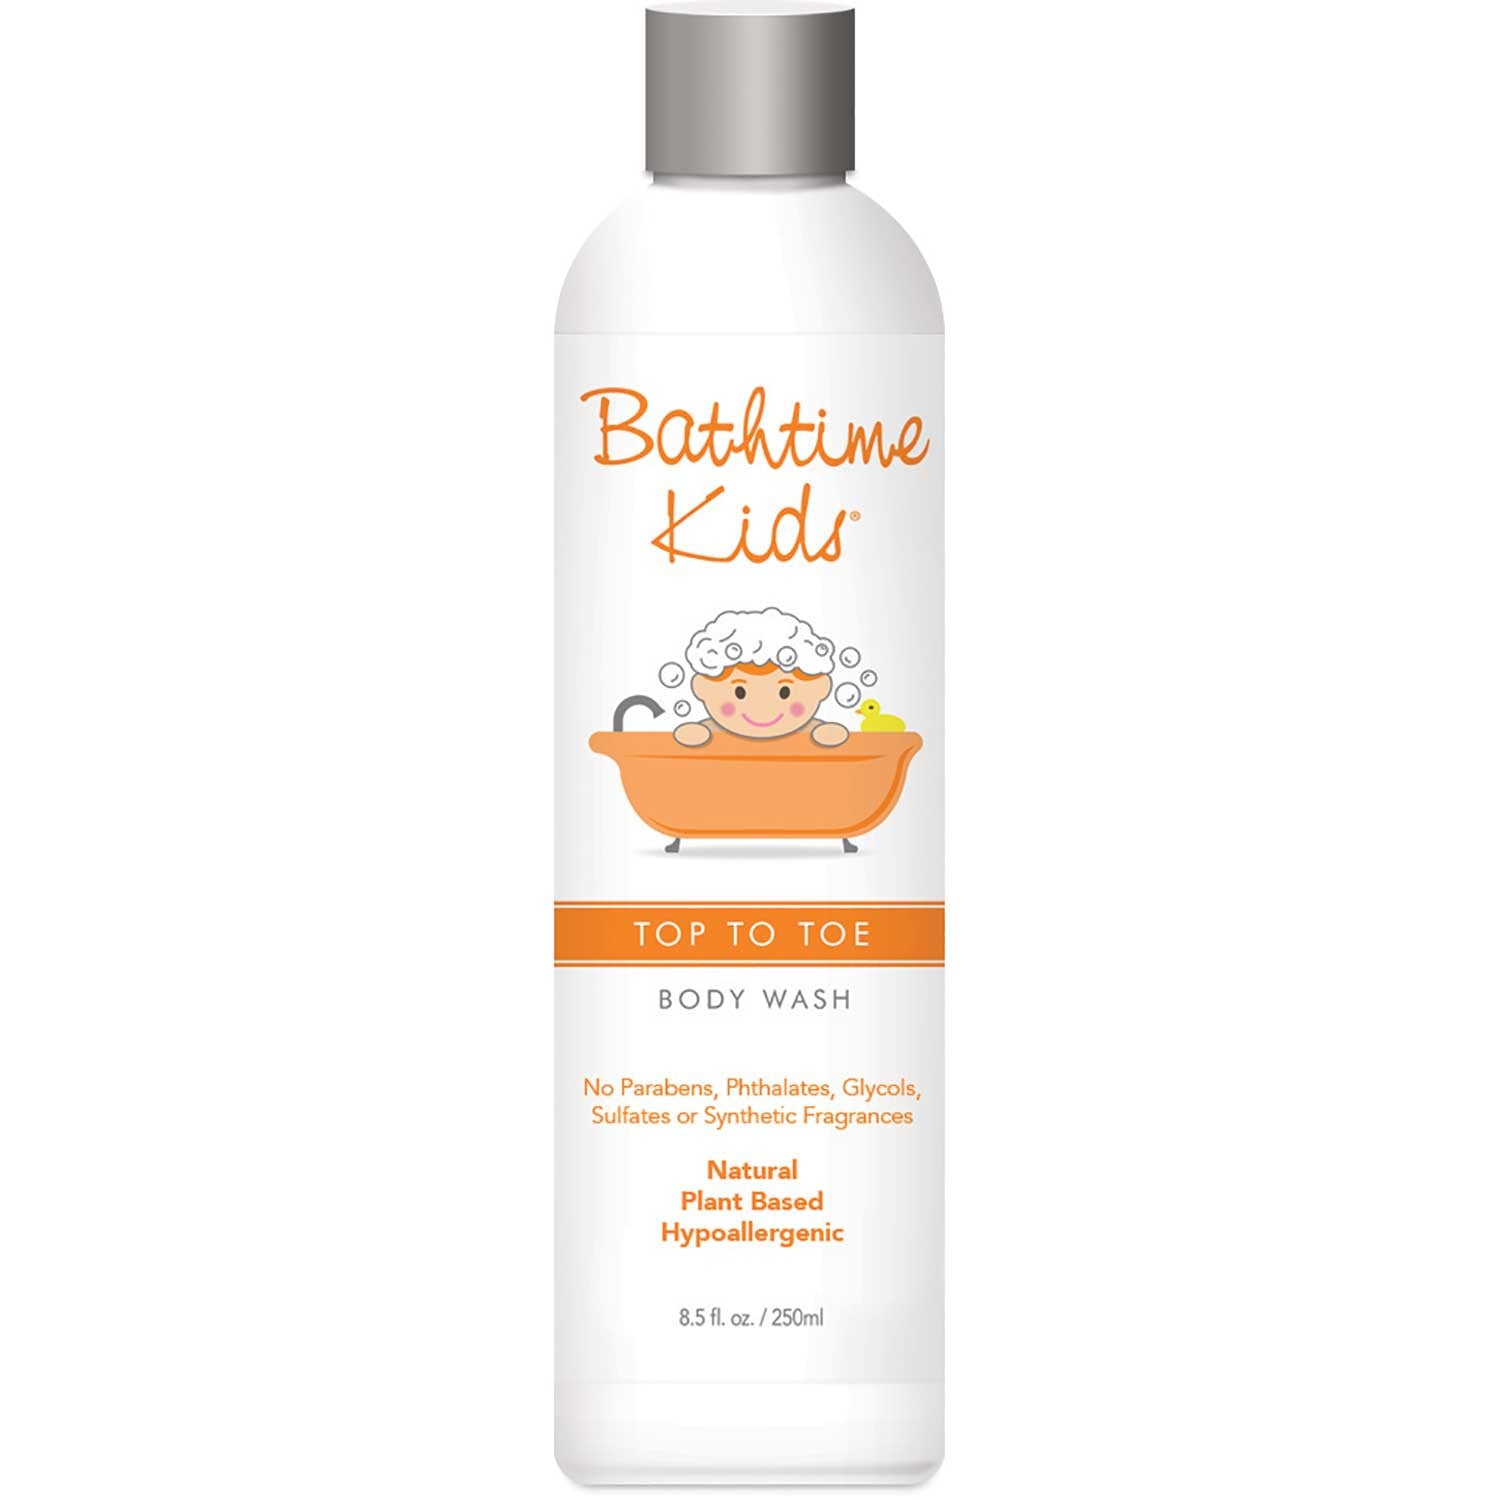 Bathtime Kids Top to Toe Body Wash, 250ml.